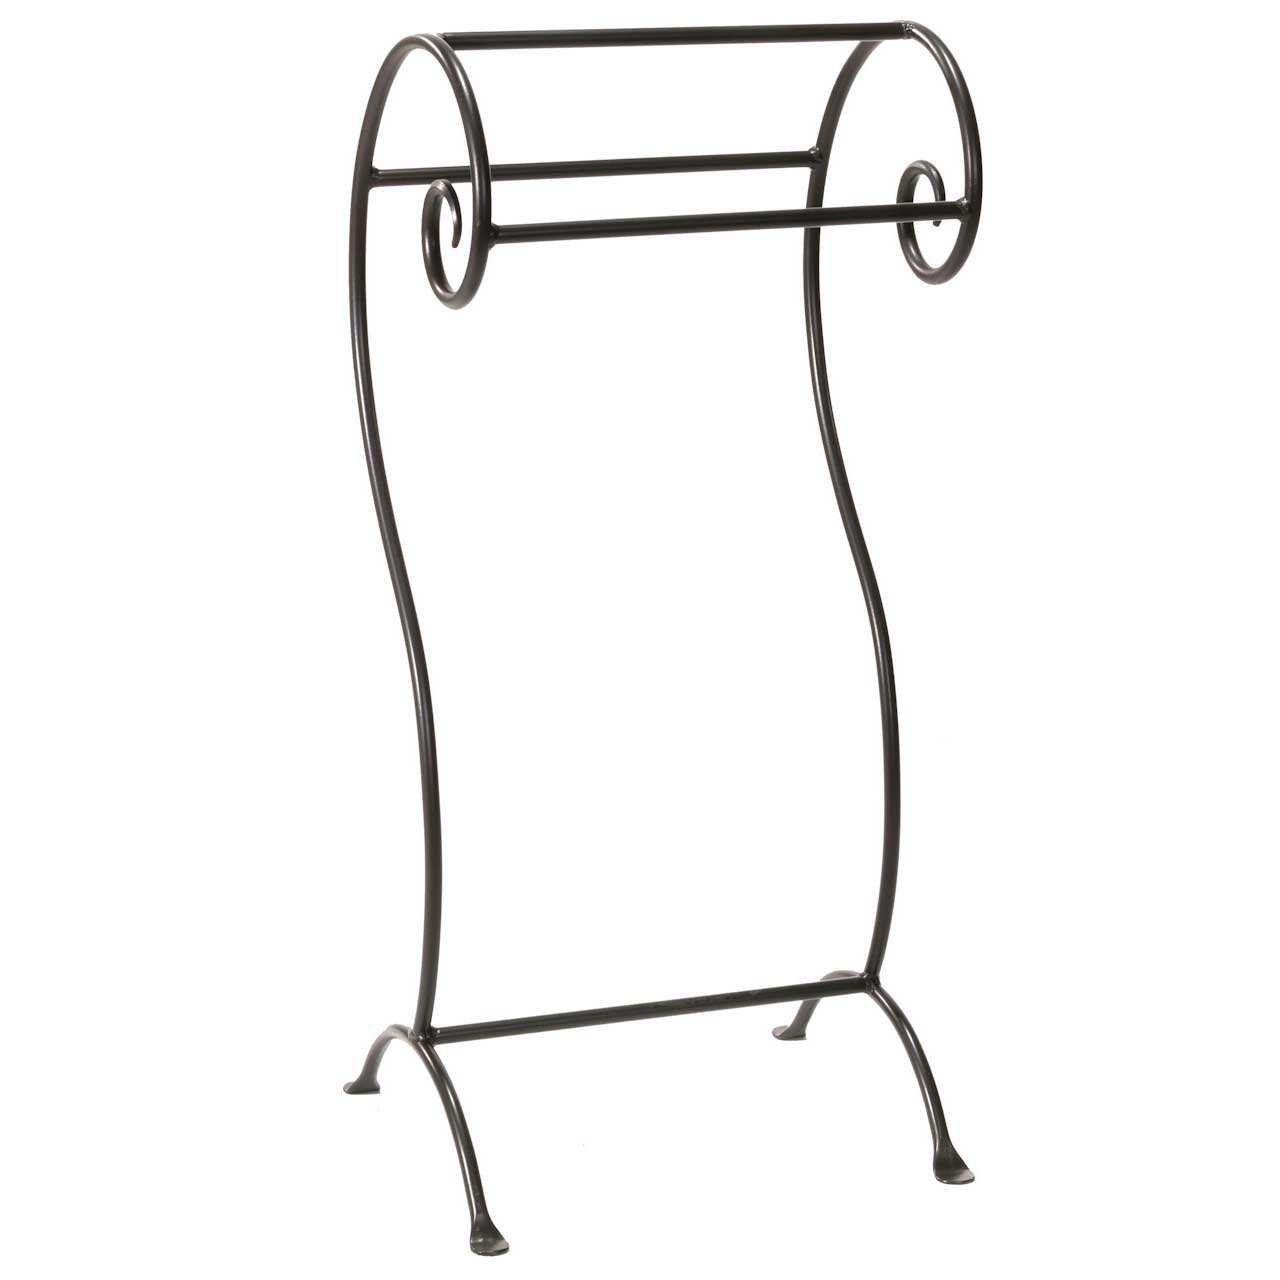 Waterbury Wrought Iron Towel Rack | Measures 17.5"|1280|1280|?|False|cadf5aea7a81f16d53a65fb740054efb|False|UNLIKELY|0.37084588408470154